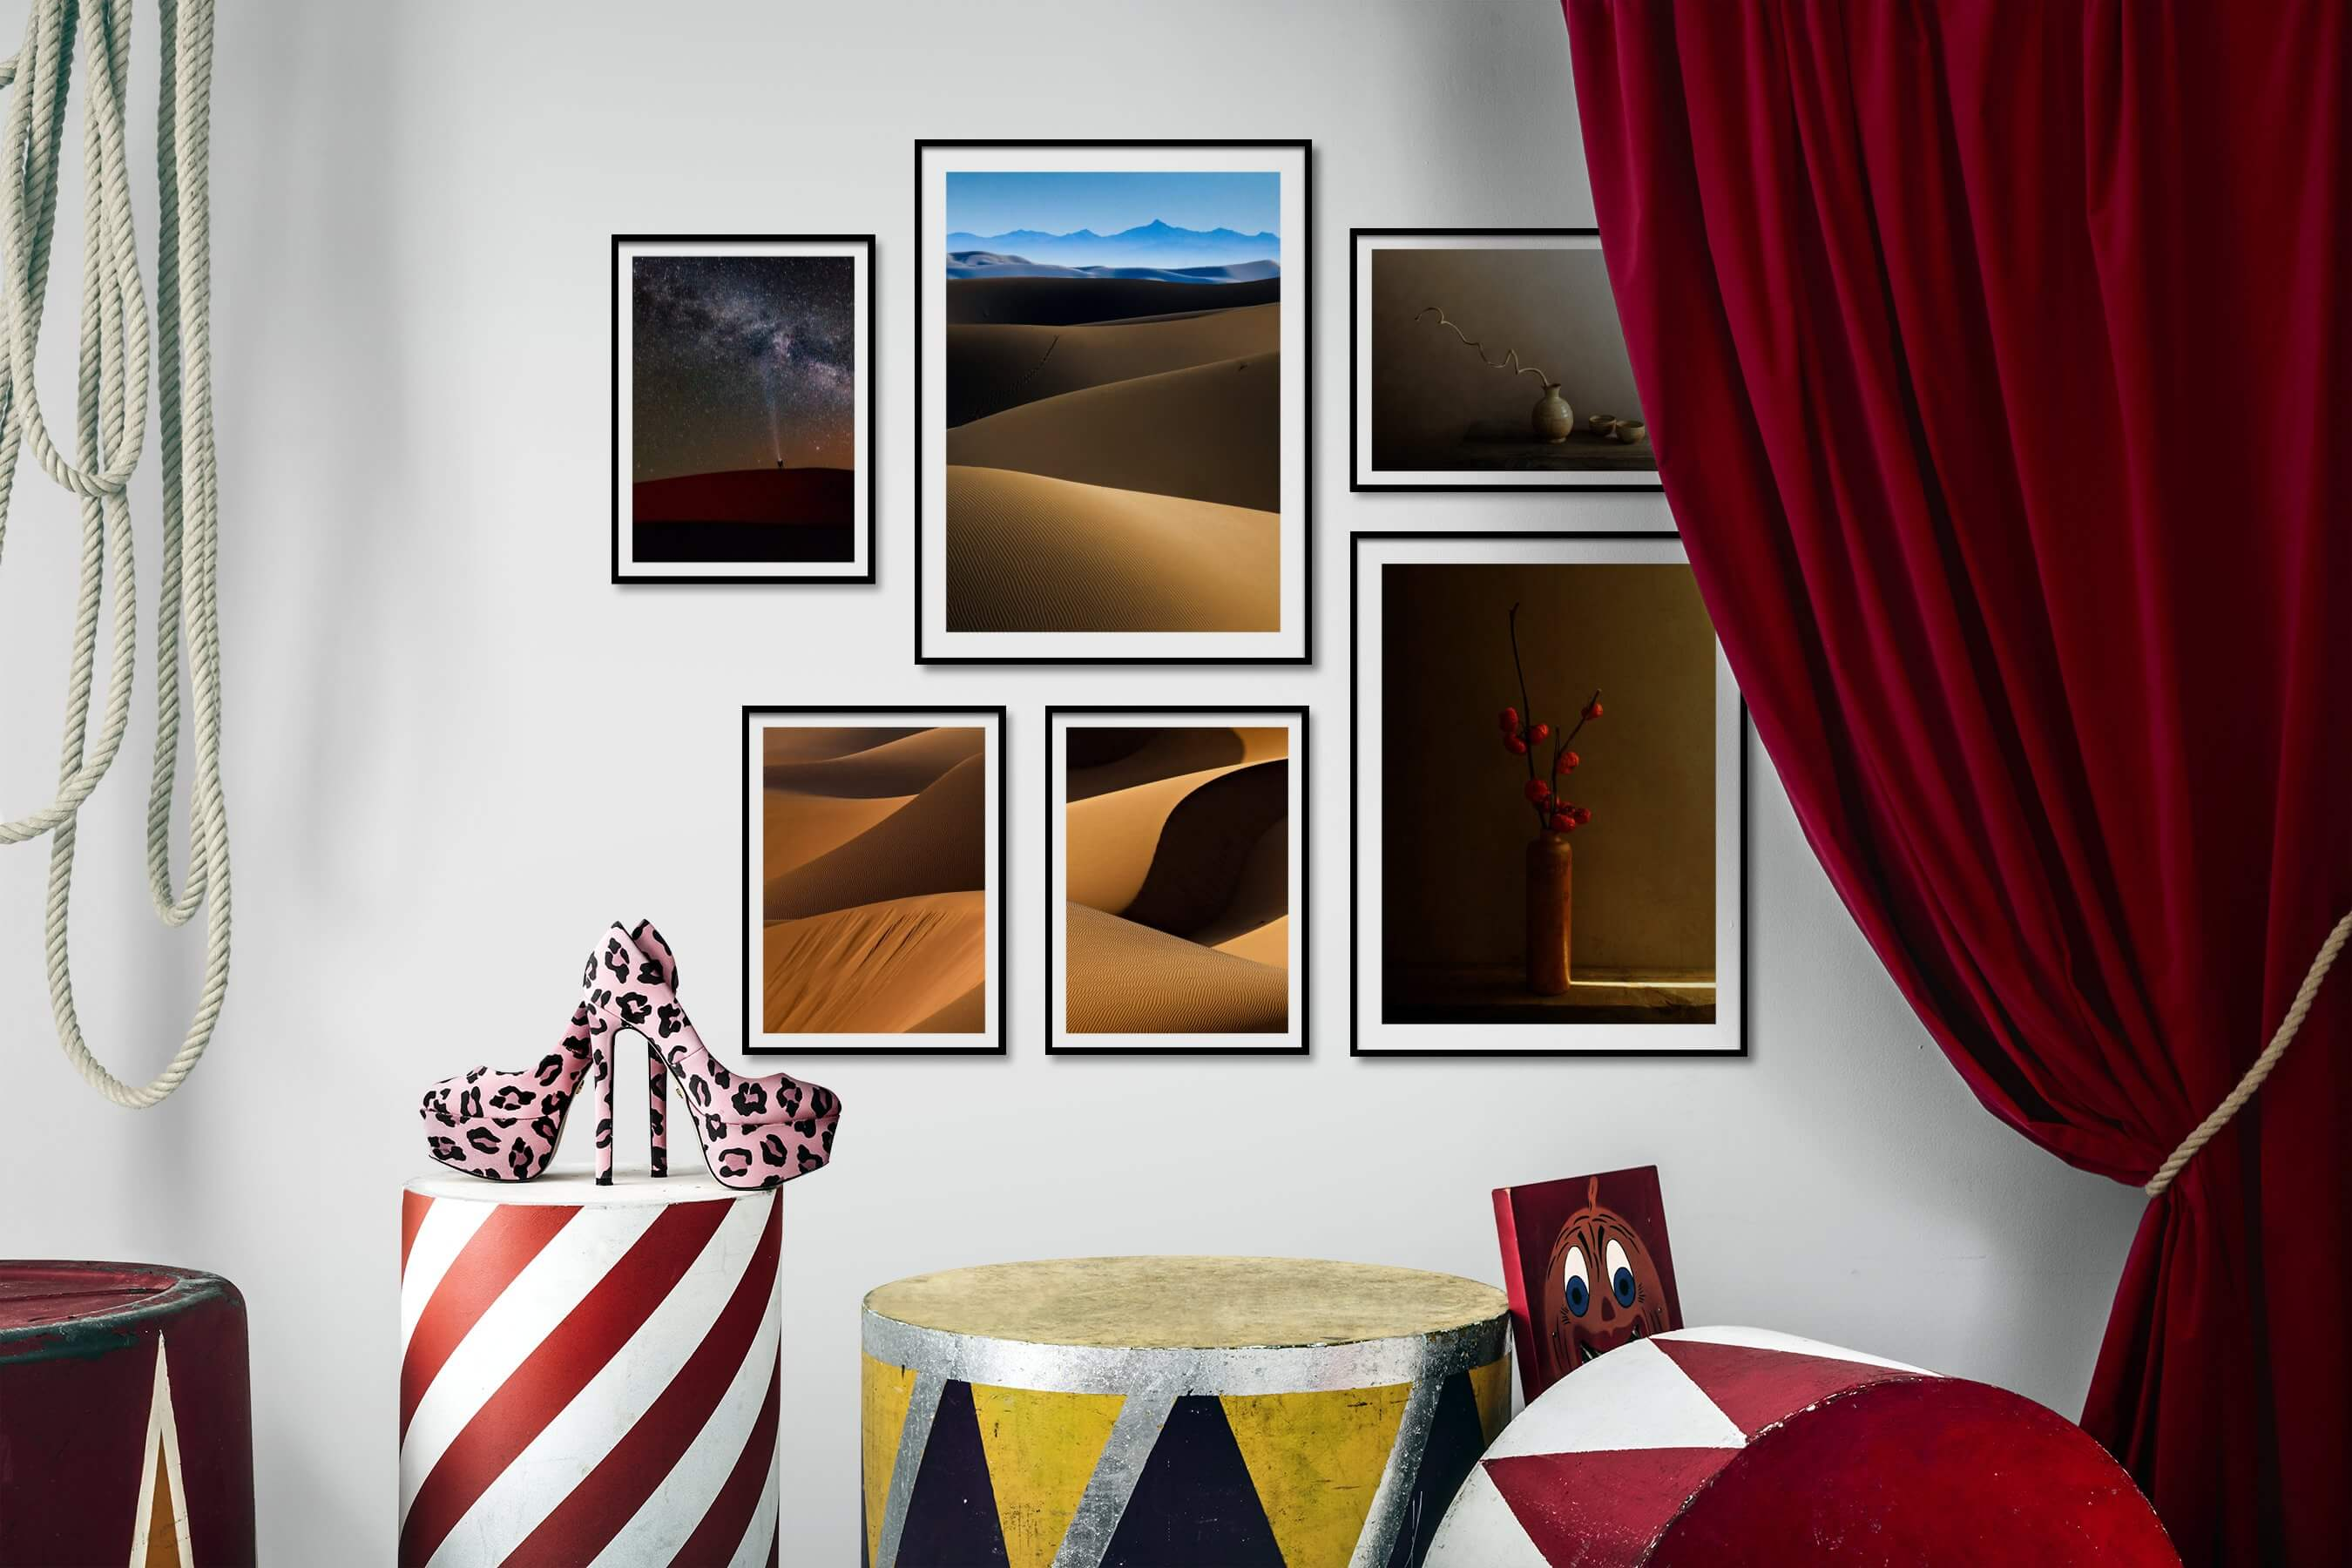 Gallery wall idea with six framed pictures arranged on a wall depicting For the Minimalist, Nature, For the Moderate, Flowers & Plants, and Vintage